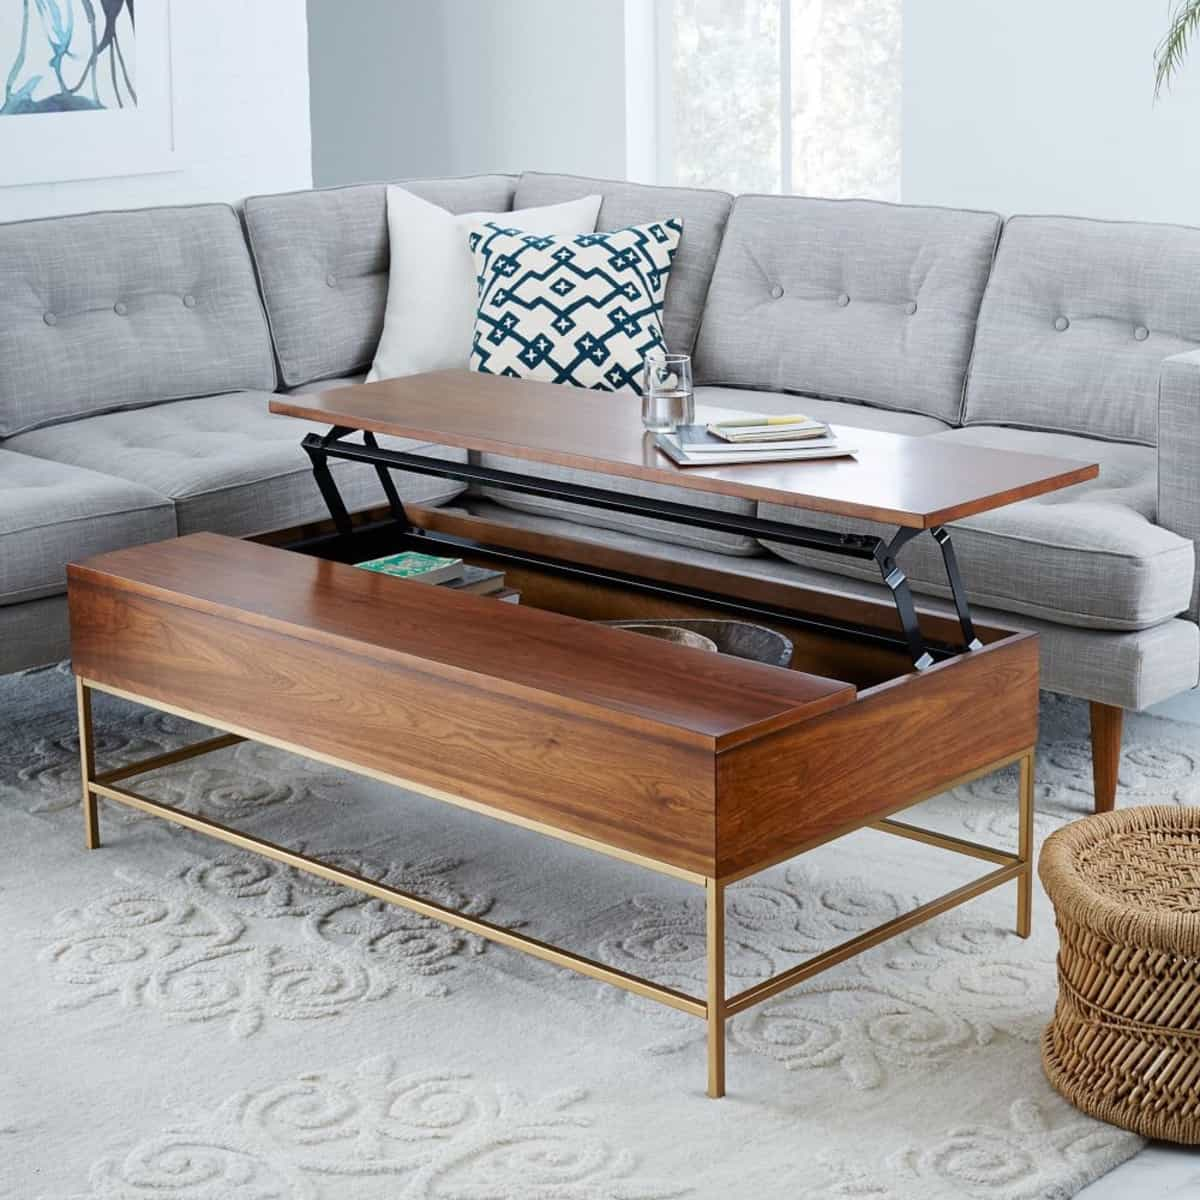 Expandable Modern Wood Coffee Table For Living Room (Image 7 of 30)